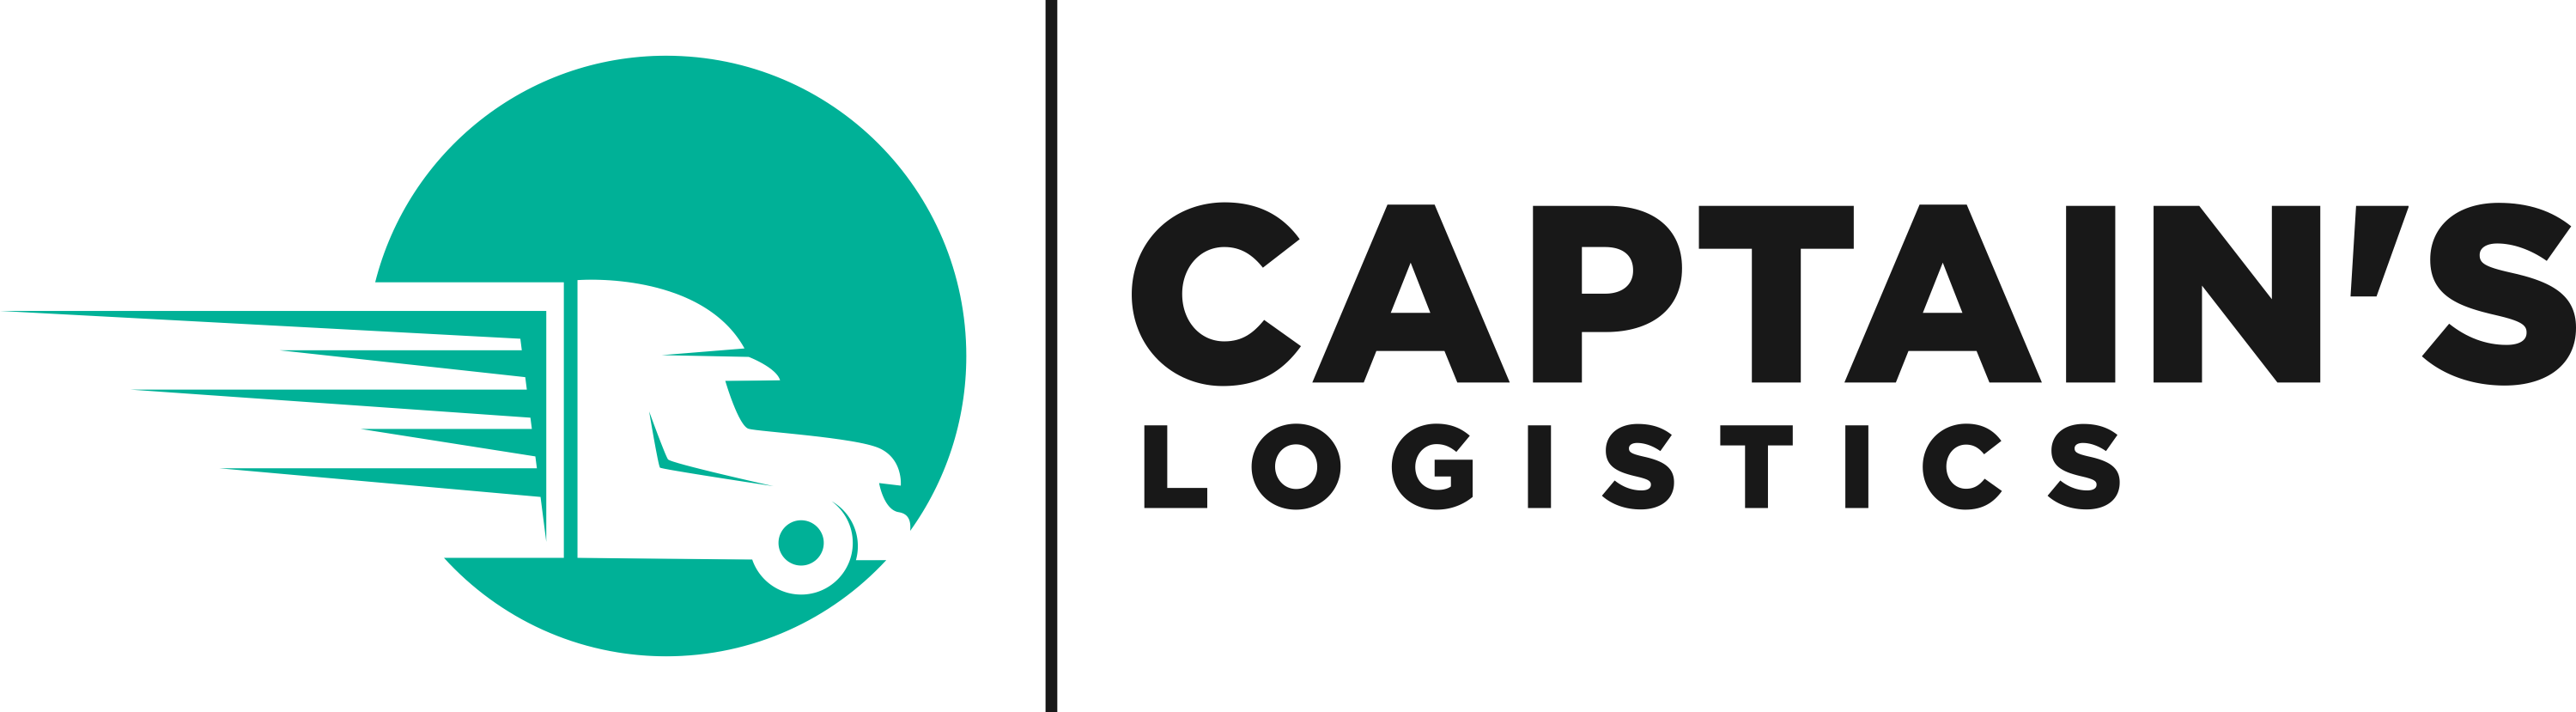 Captain Logistics